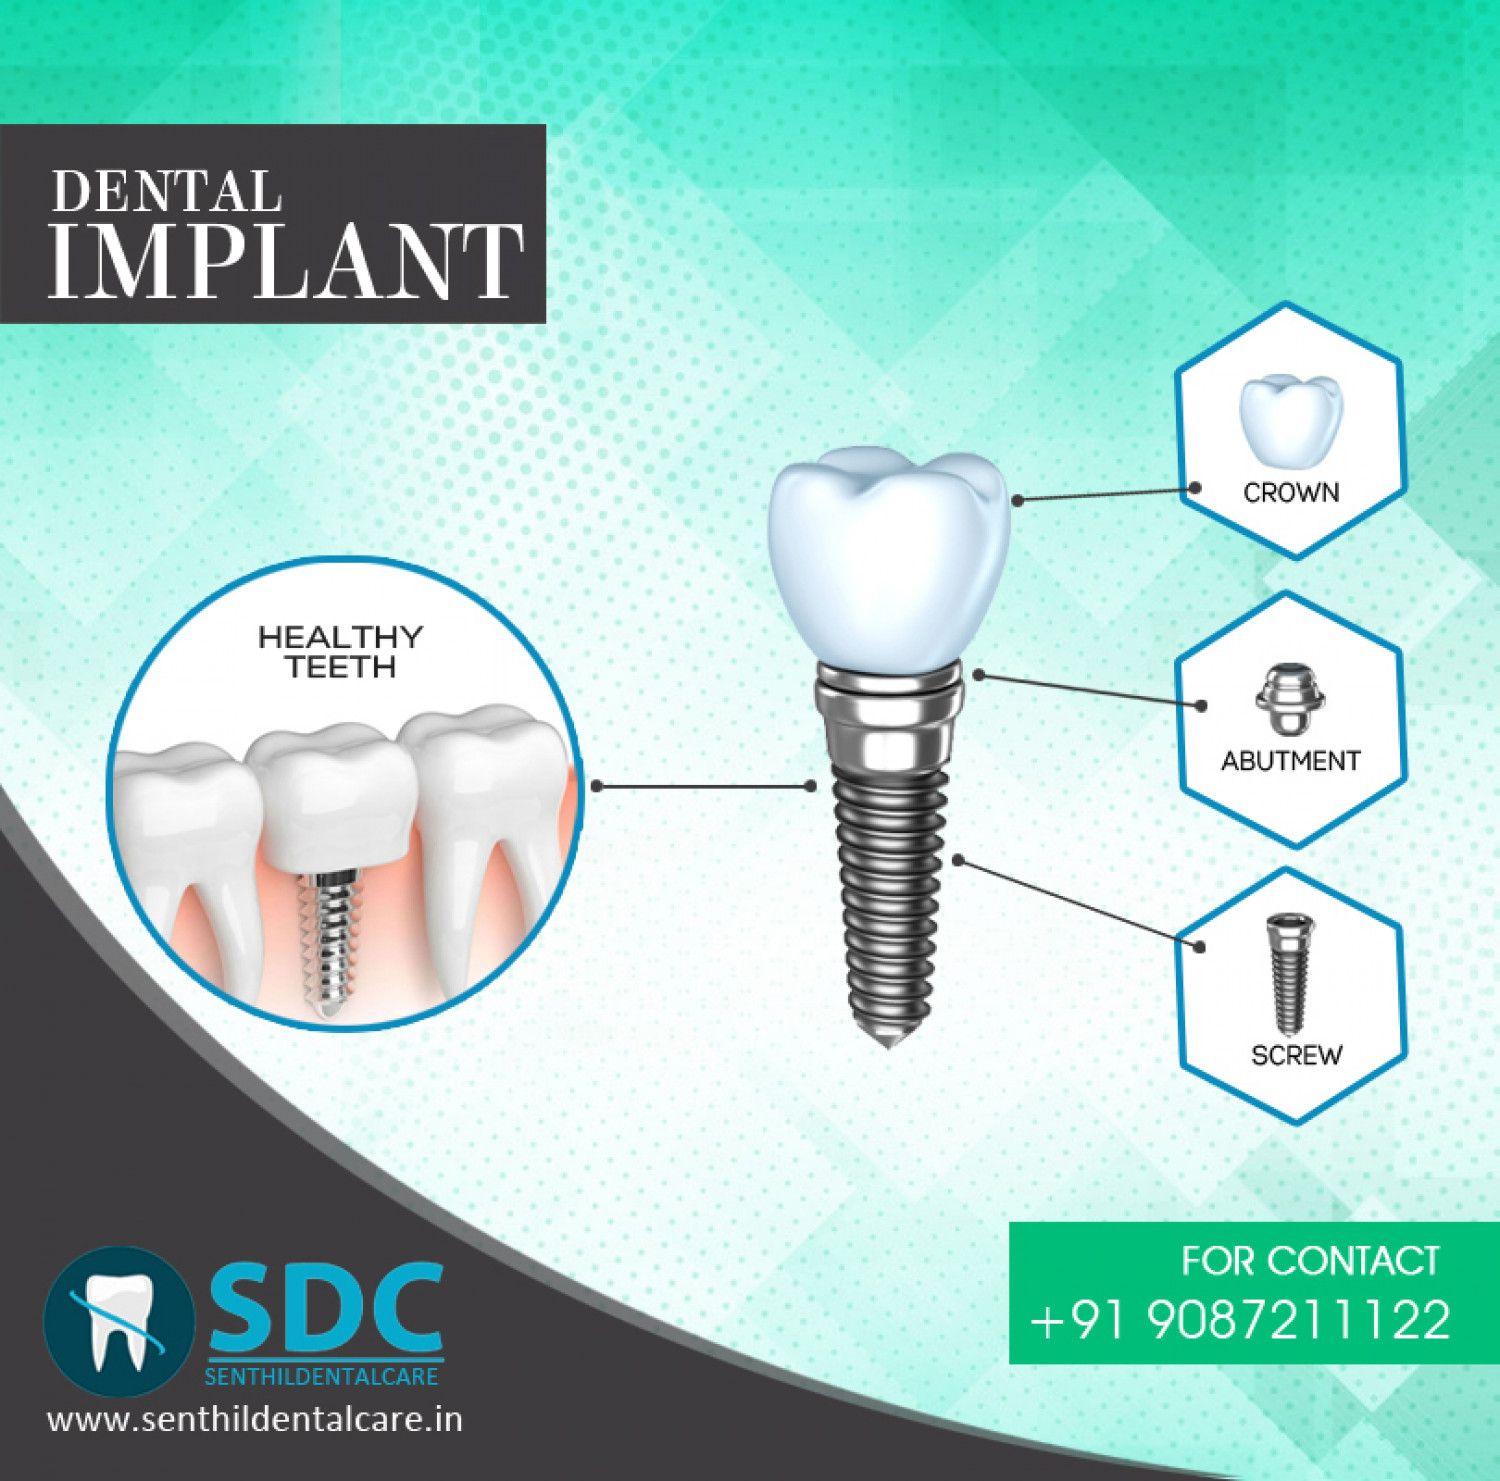 Best dental implants clinic services tooth implants cost